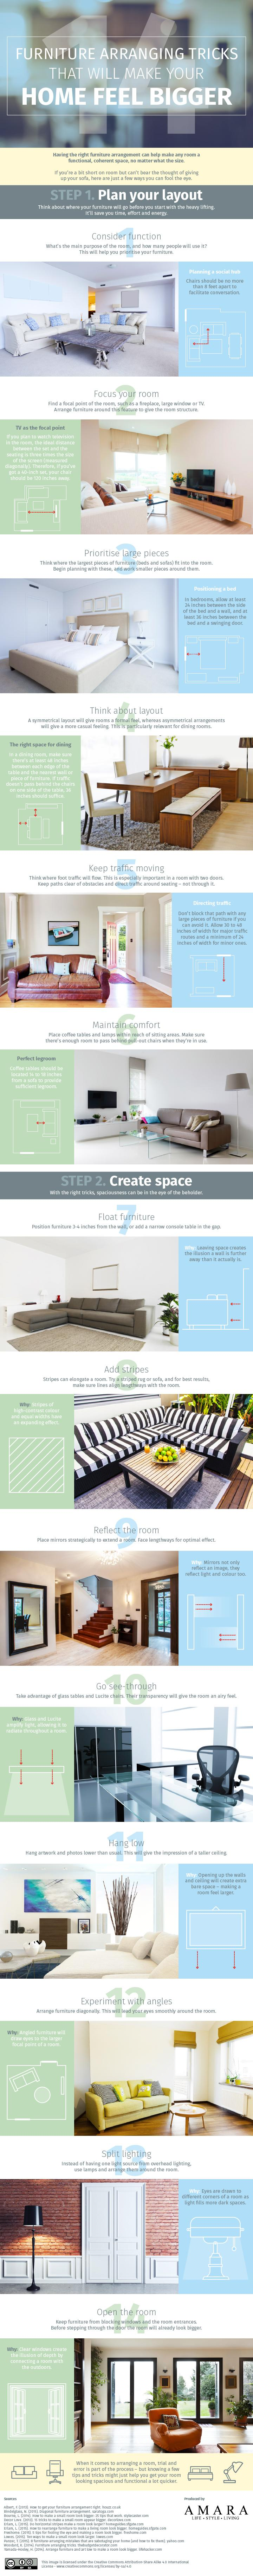 14-furniture-arranging-tricks-that-will-make-your-home-feel-bigger